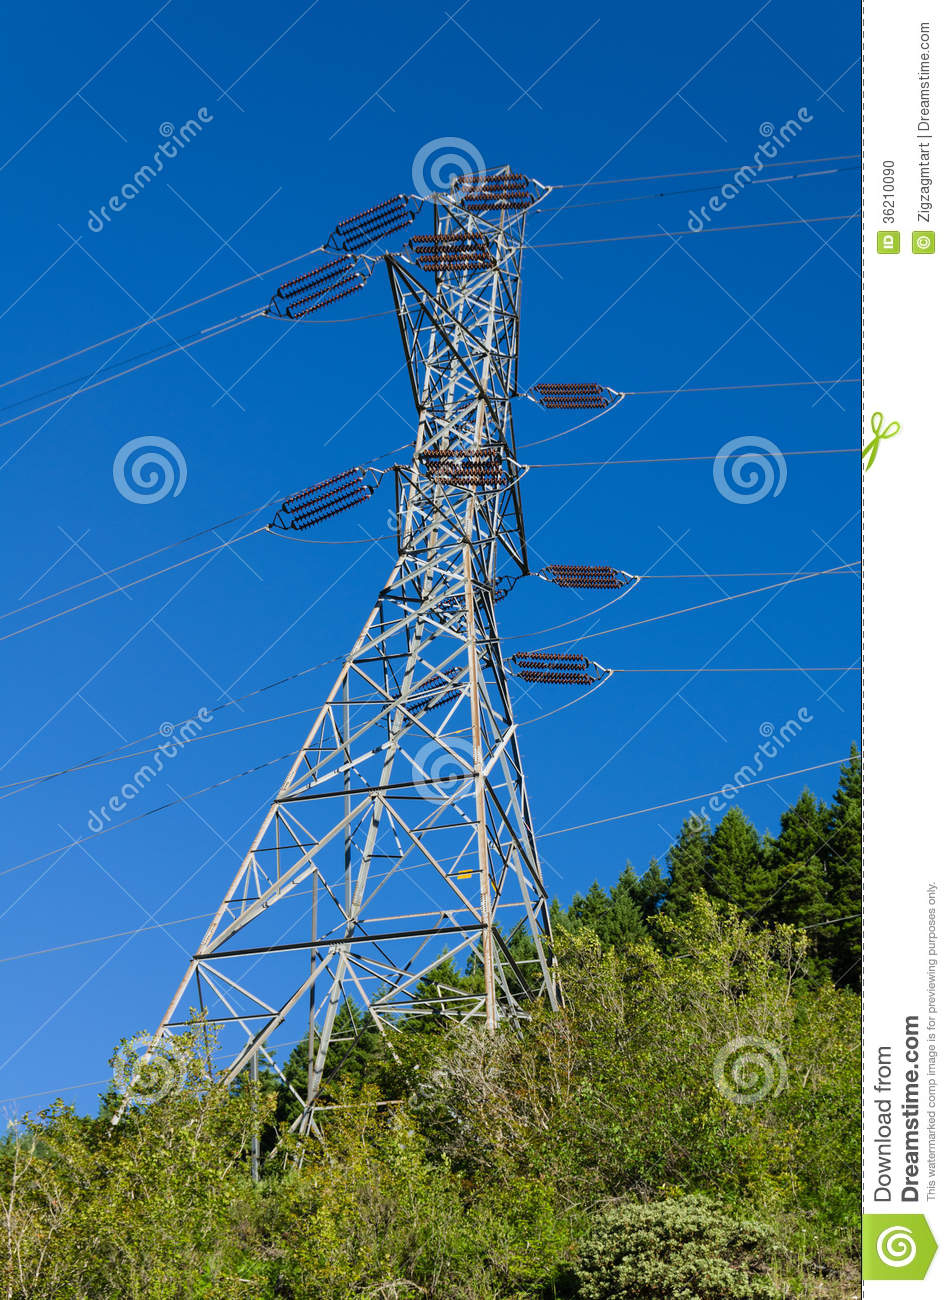 Electrical Transmission Tower To Support Power Lines Electrcial Supports High Tension